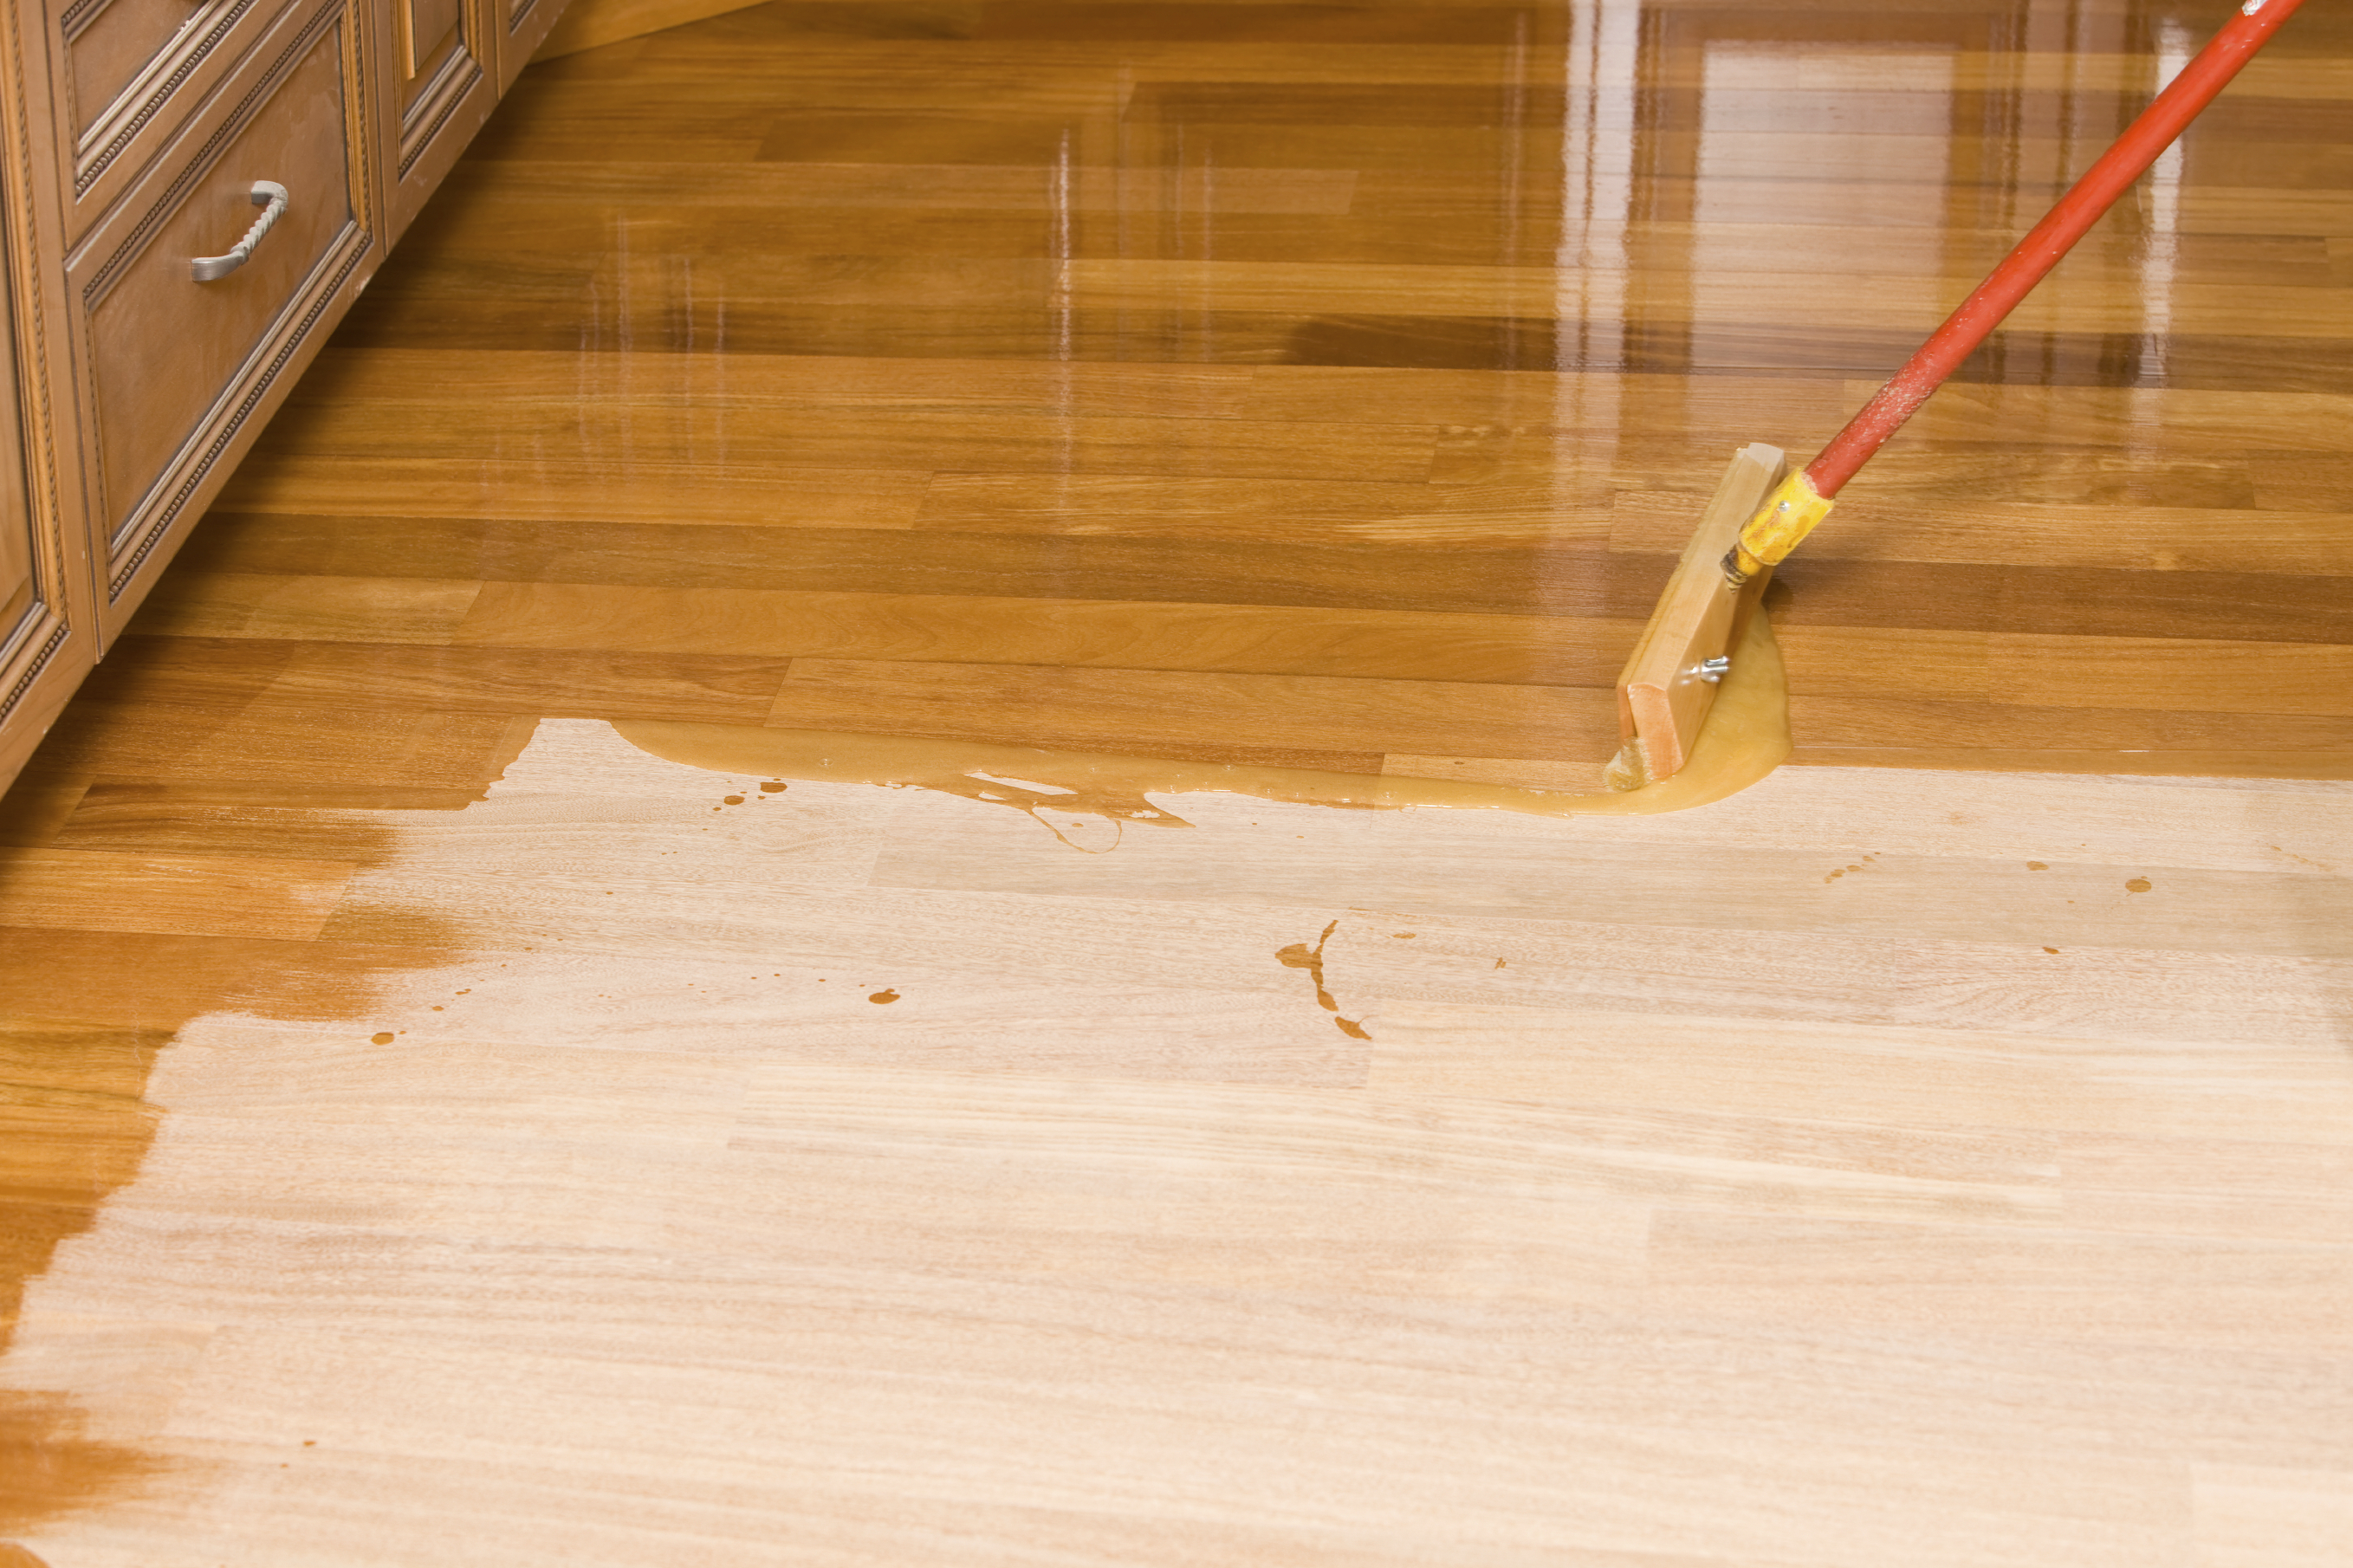 Hardwood Floor Protection best way to protect wood floors during construction gurus floor Hardwood Floor Protection By Regular Sanding And Staining Hardwood Floors